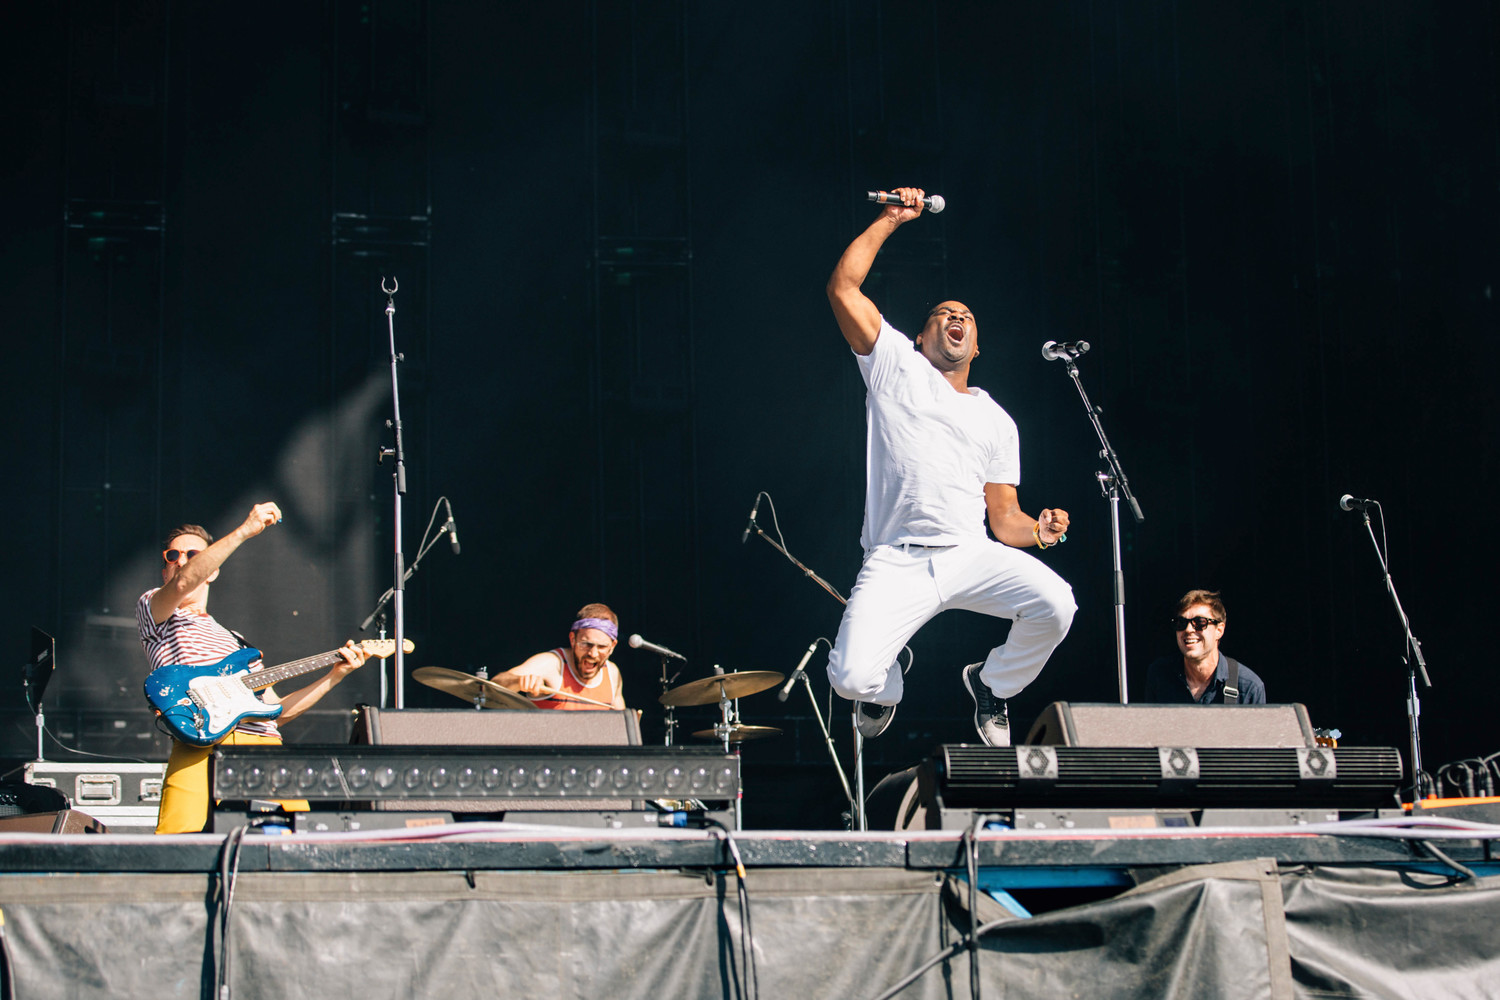 Antaun Stanley jumps as Vulfpeck perform at Austin City Limits, Friday, Oct. 6.